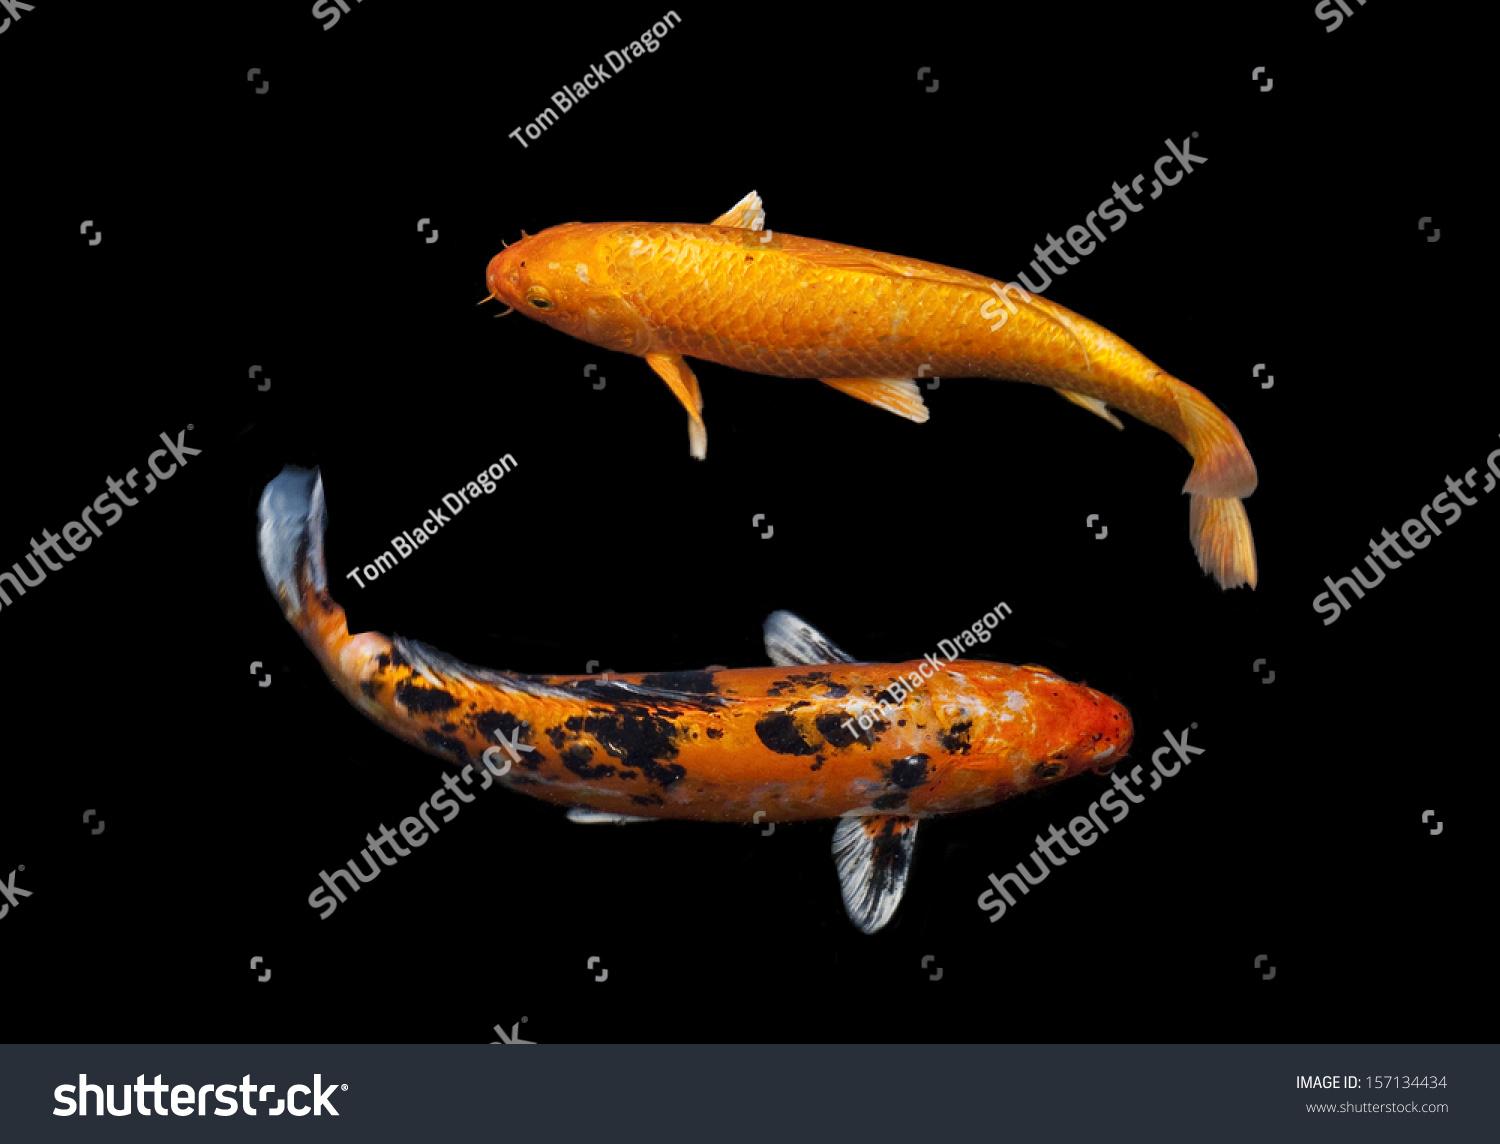 Koi fish swim pondisolate background blackfancy stock for Red and white koi fish